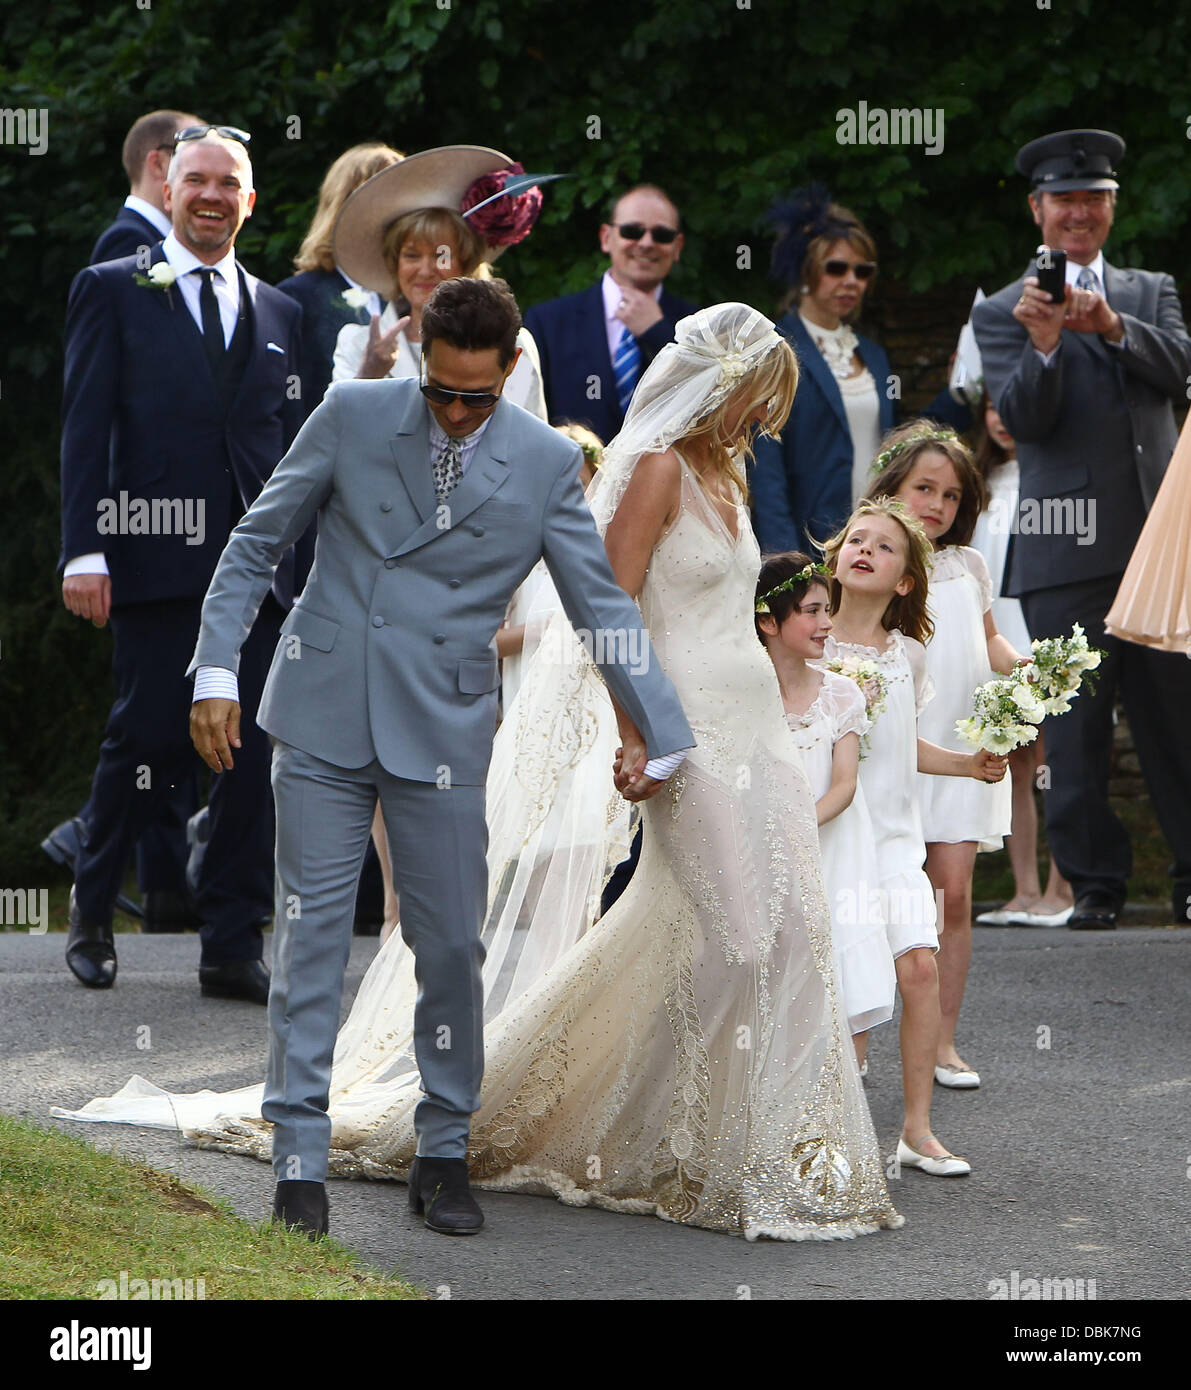 The marriage ceremony of Kate Moss was held in the small old church of St. Margaret 07/02/2011 45